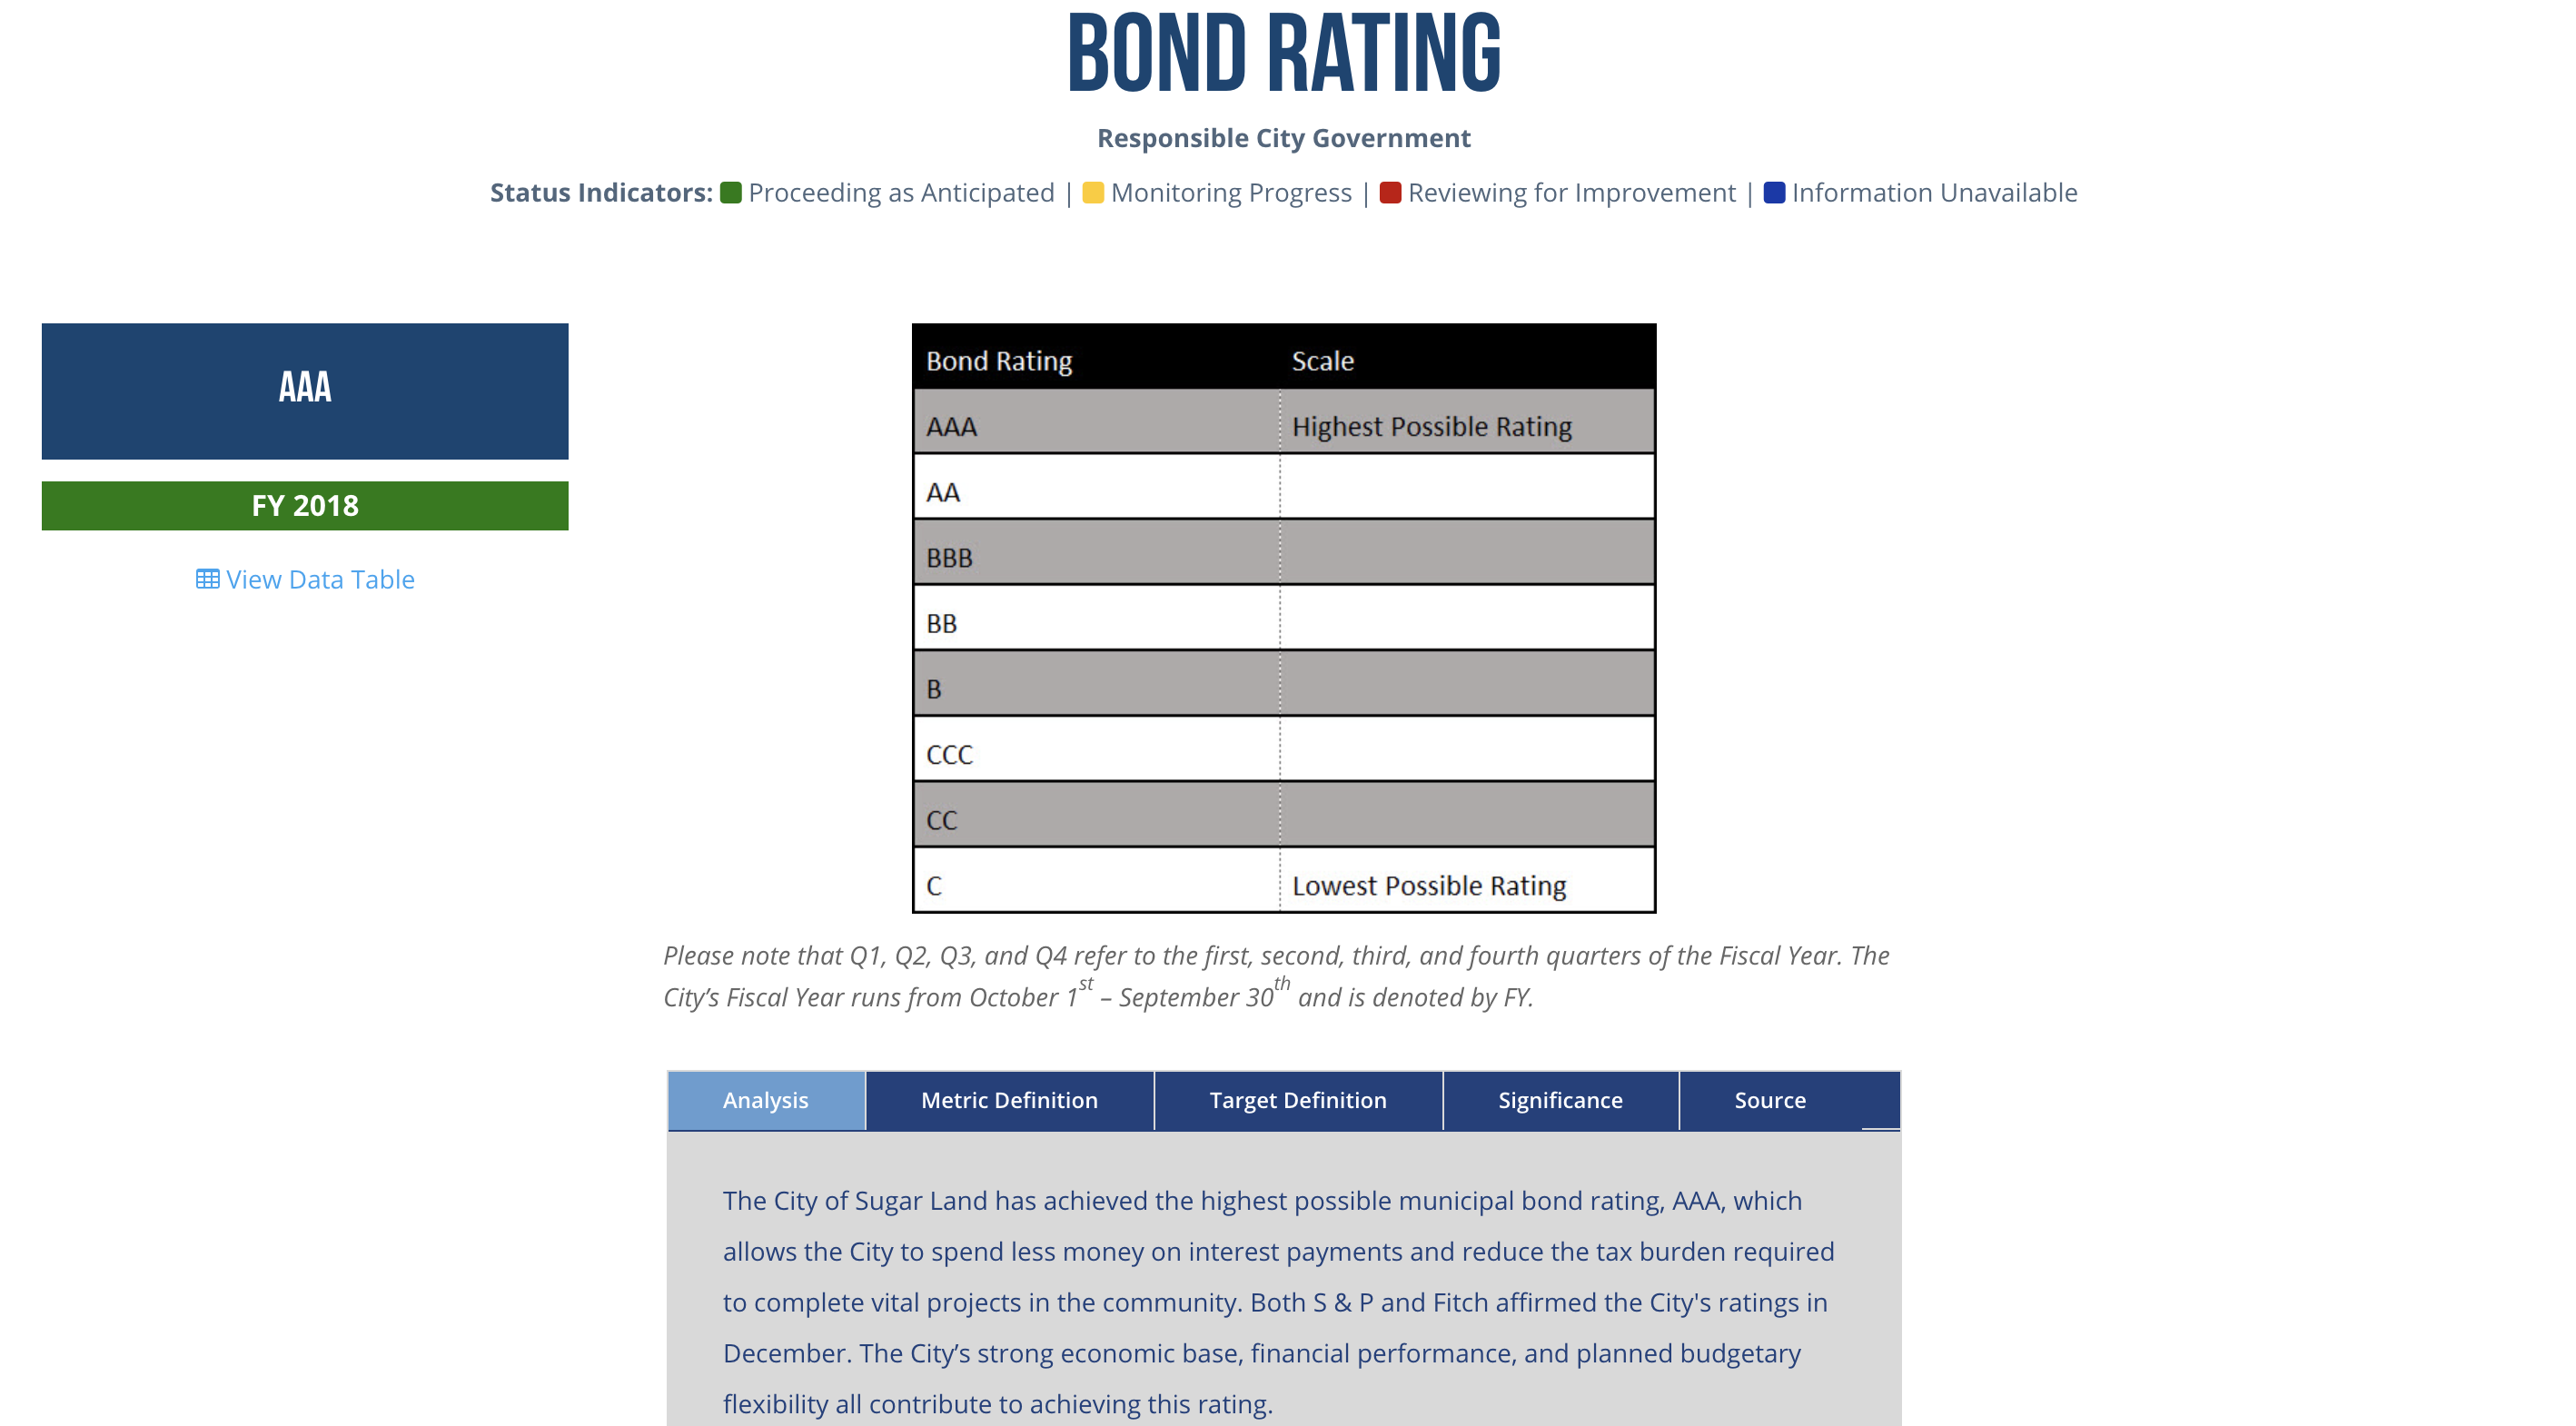 Bond rating details from Responsible City Government page - City of Sugar Land